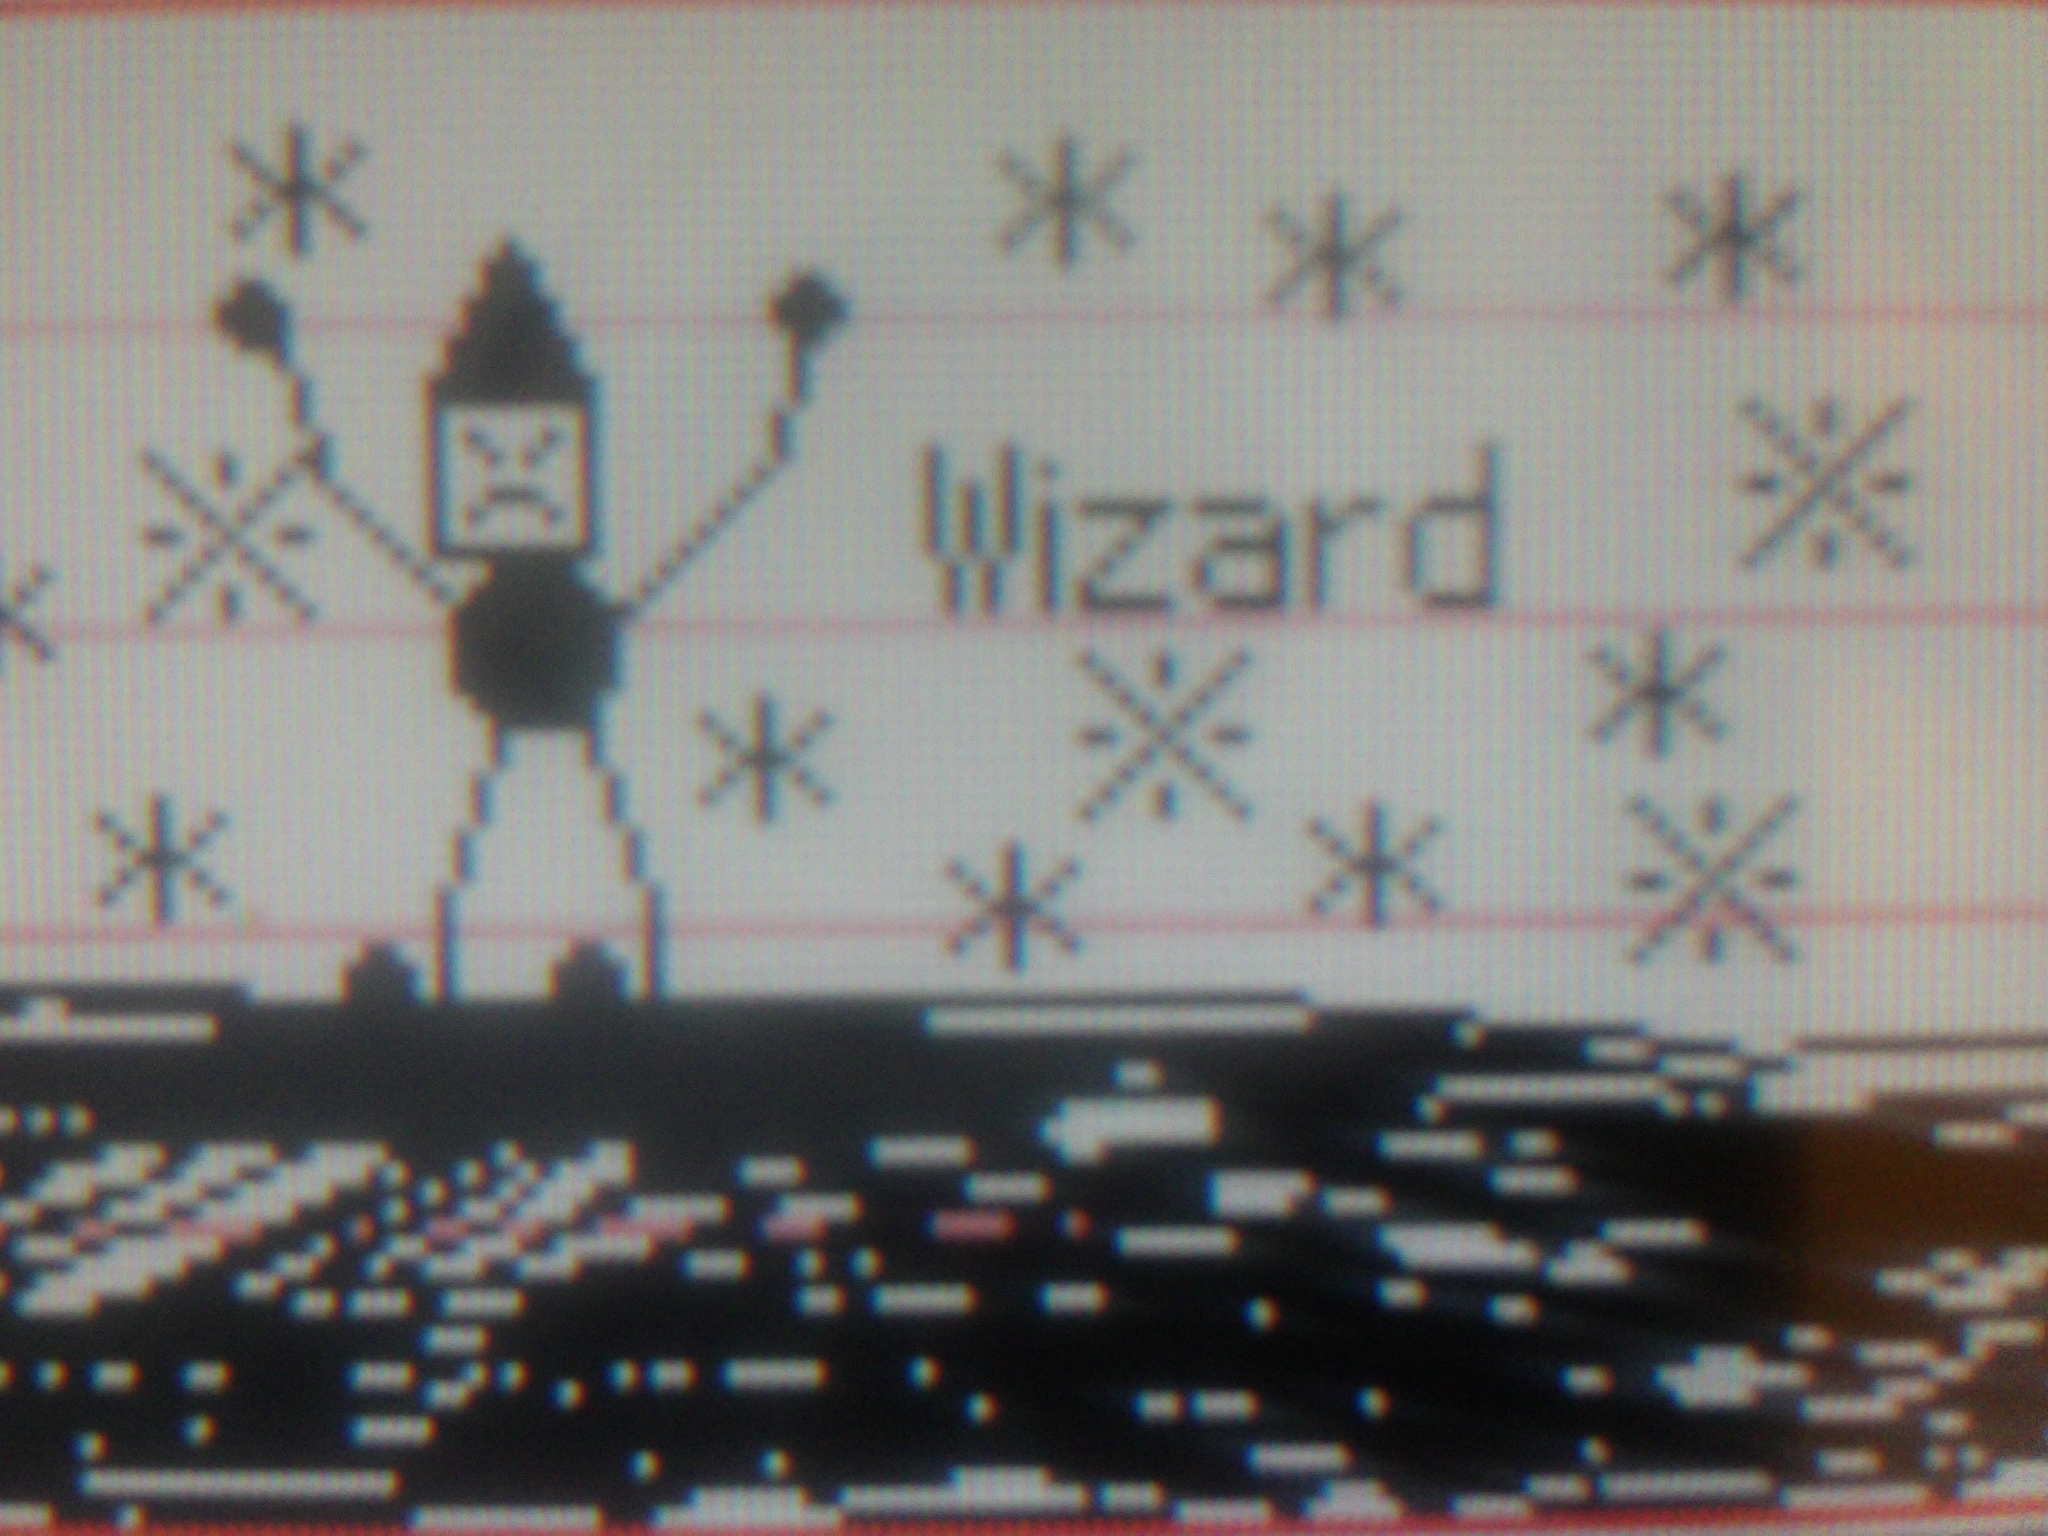 PictoChat Wizard